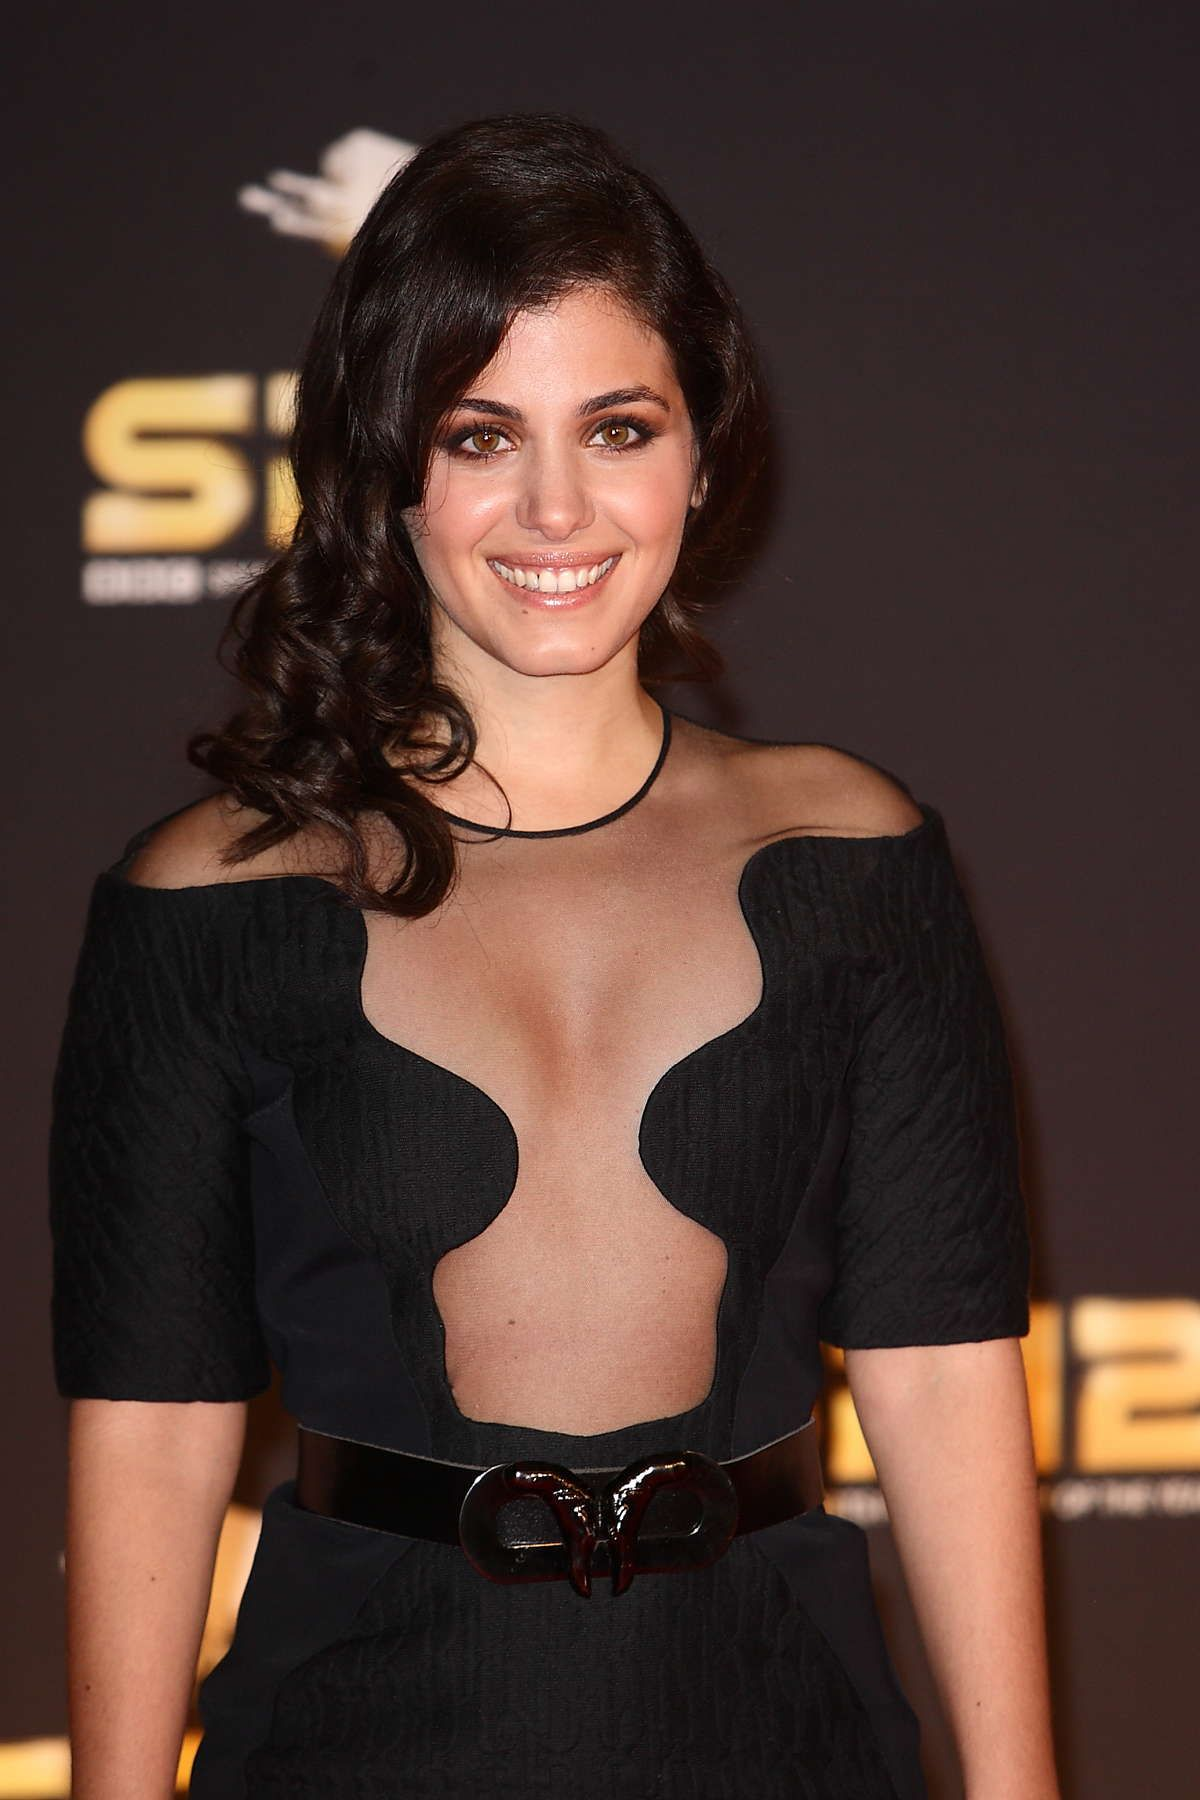 Discussion on this topic: Katie Melua turns model for Eric Bompard, katie-melua-turns-model-for-eric-bompard/